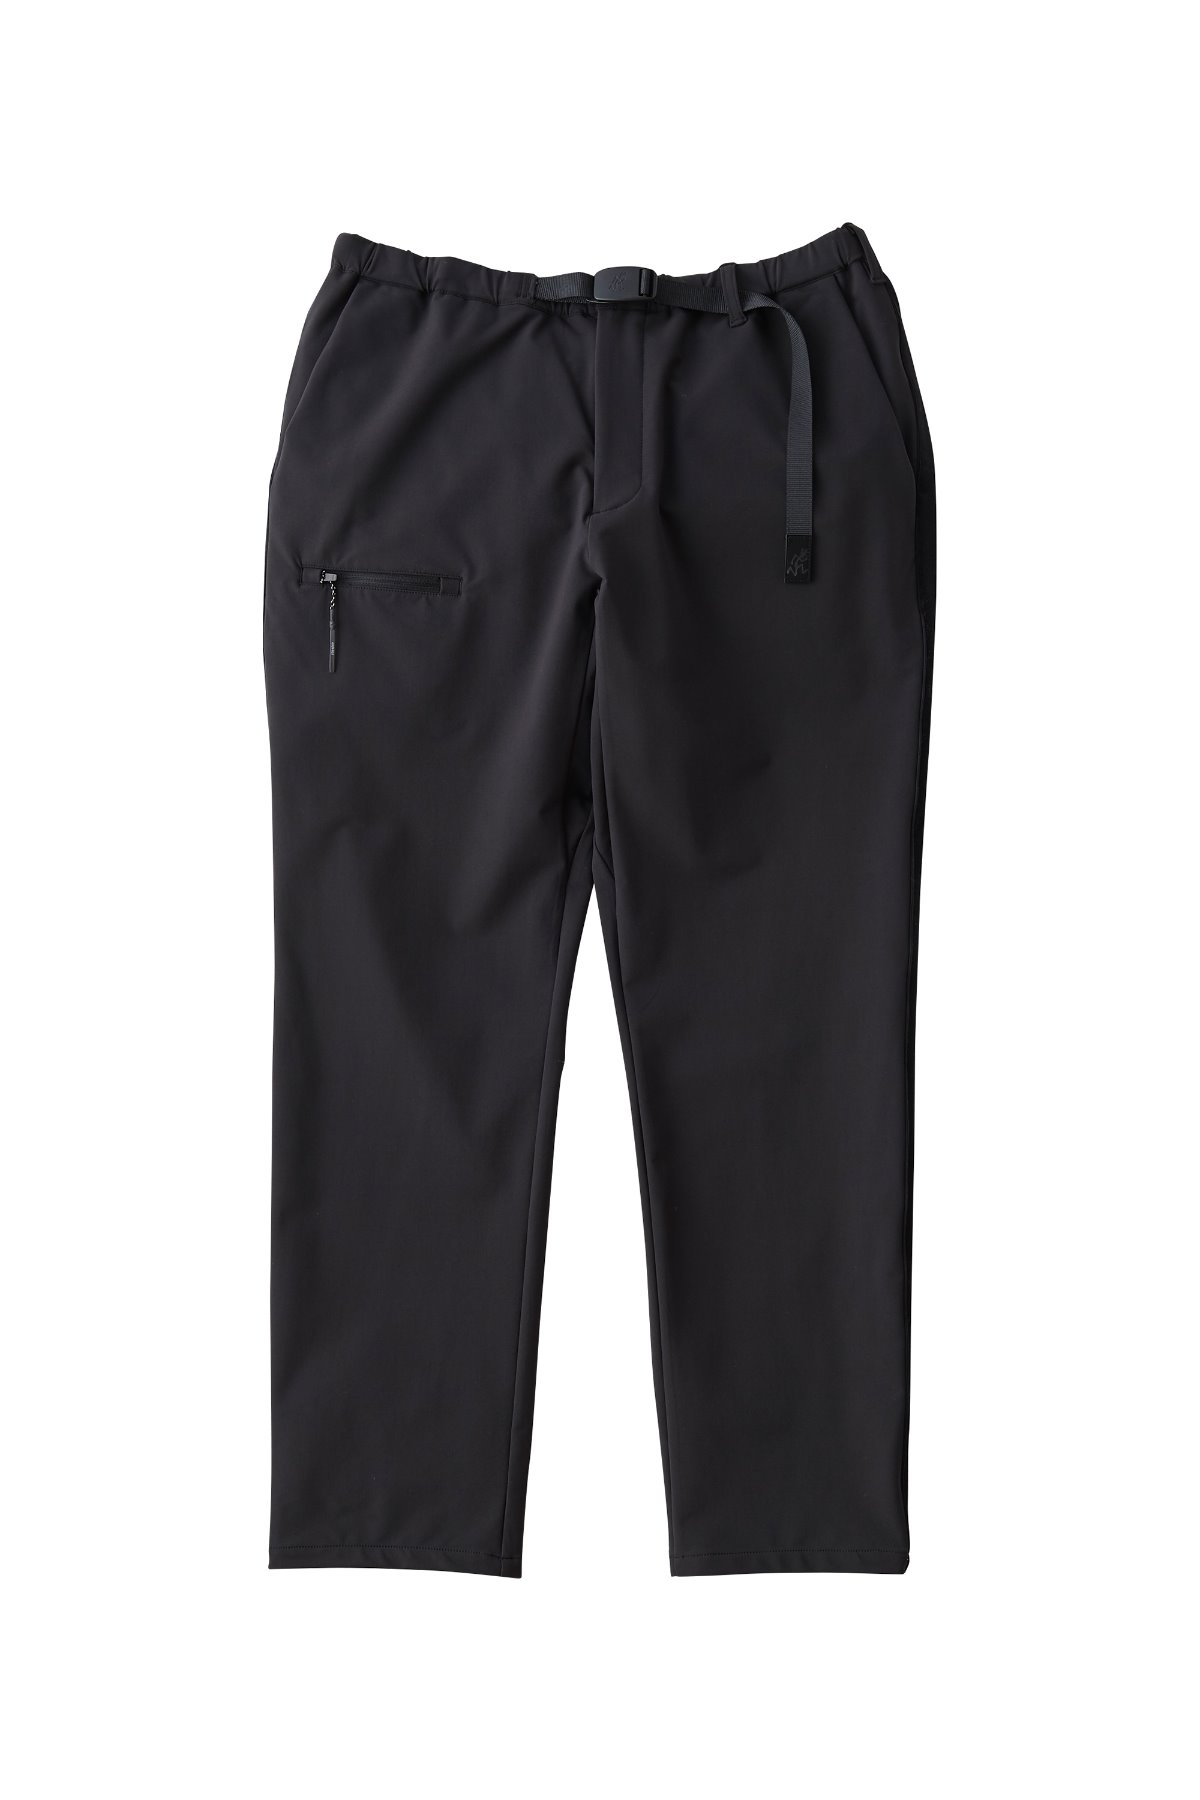 STORMFLEECE LINE PANTS BLACK